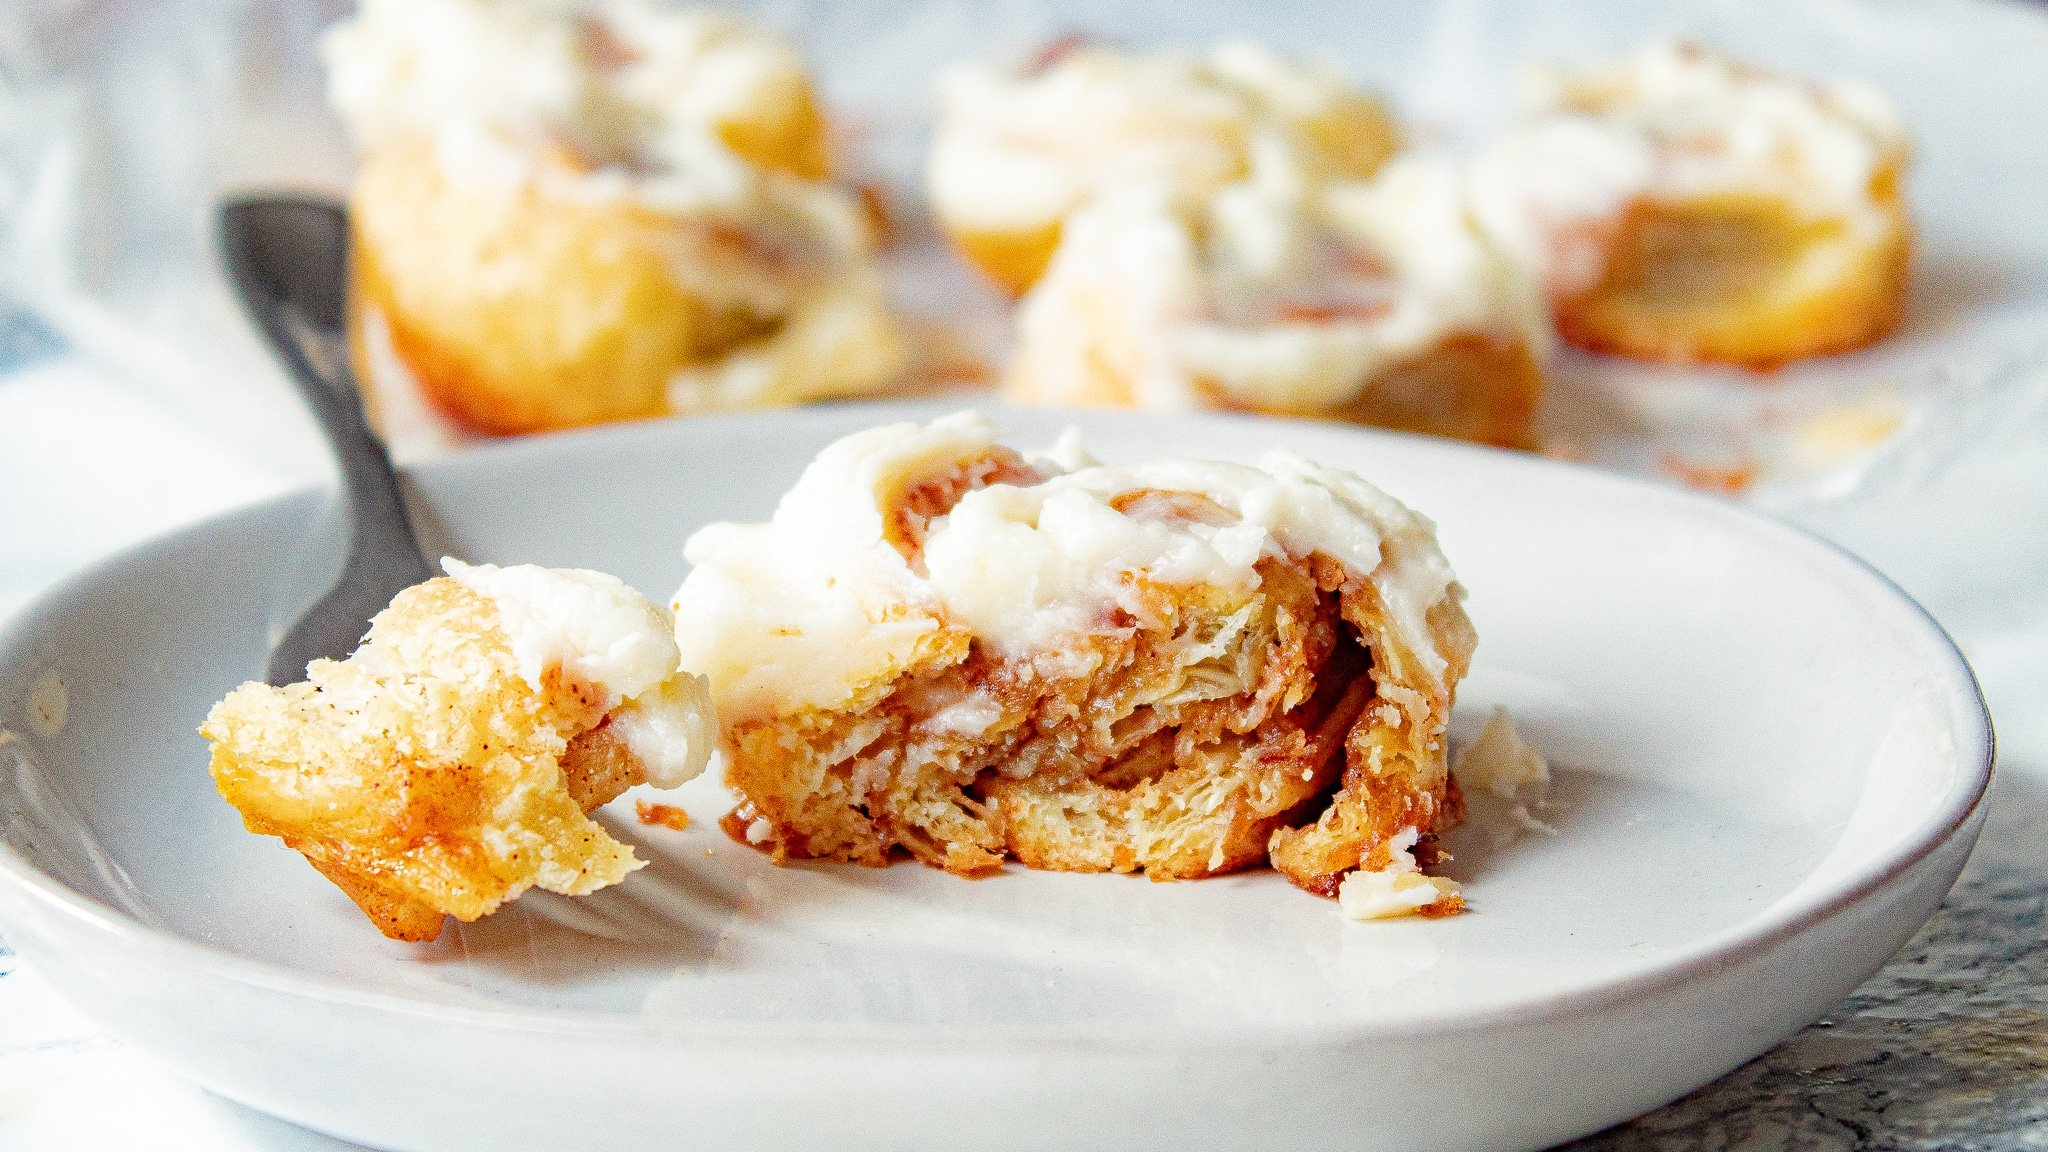 Cinnamon Puff Pastry Rolls with Cream Cheese Frosting